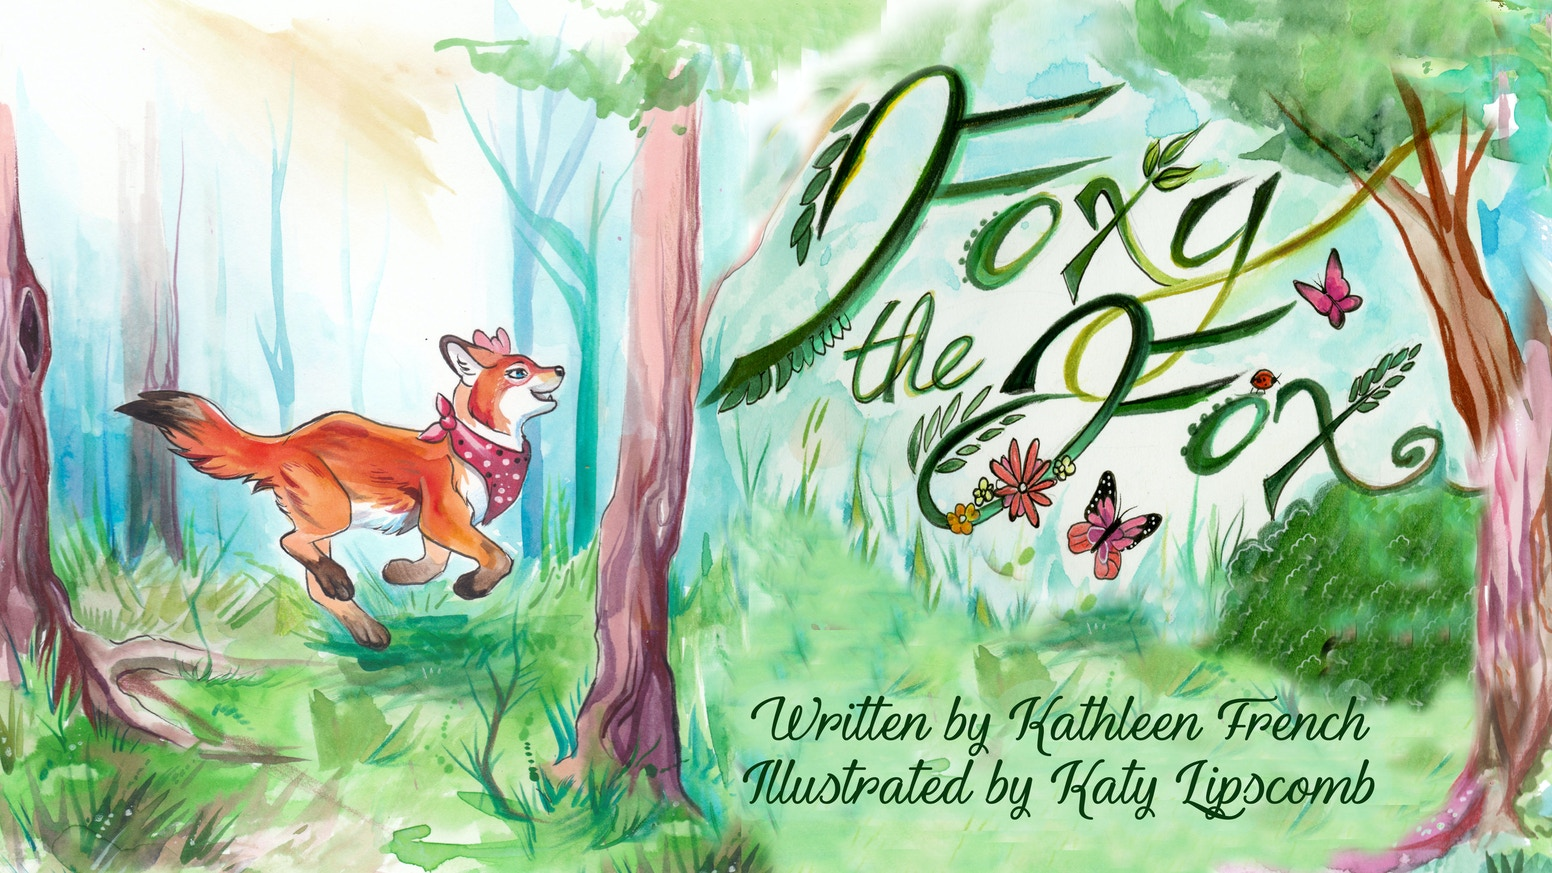 Join Foxy the Fox in her exciting debut story written by Kathleen French and illustrated by Katy Lipscomb!